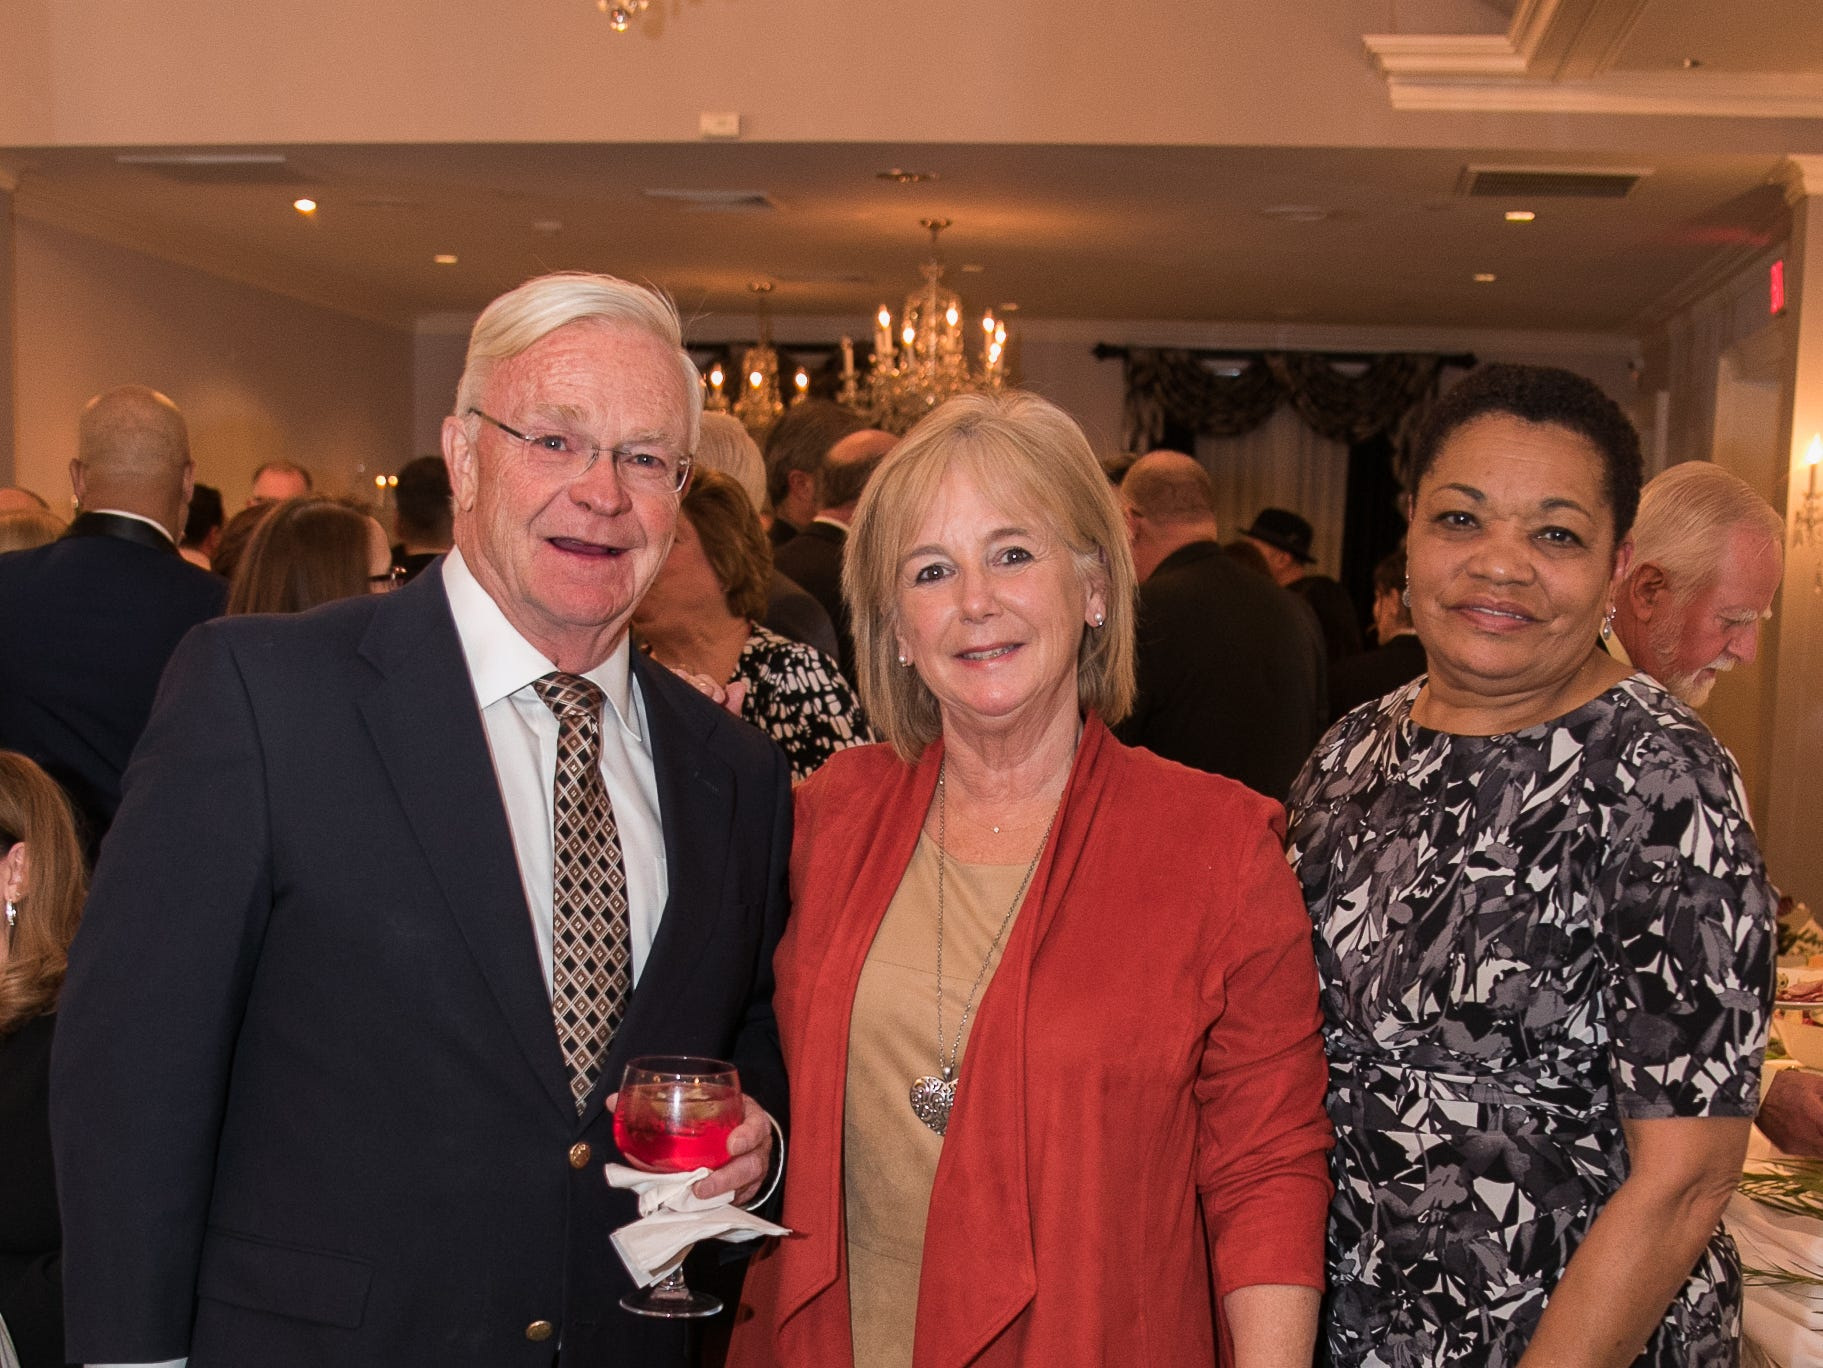 Tim and Michele Ogden, Carolyn Myles. The Bergen Volunteer Center celebrated its 10th anniversary of the Bergen LEADS program at The Hearts of Gold Dinner and Auction at the Stony Hill Inn in Hackensack. 11/08/2018